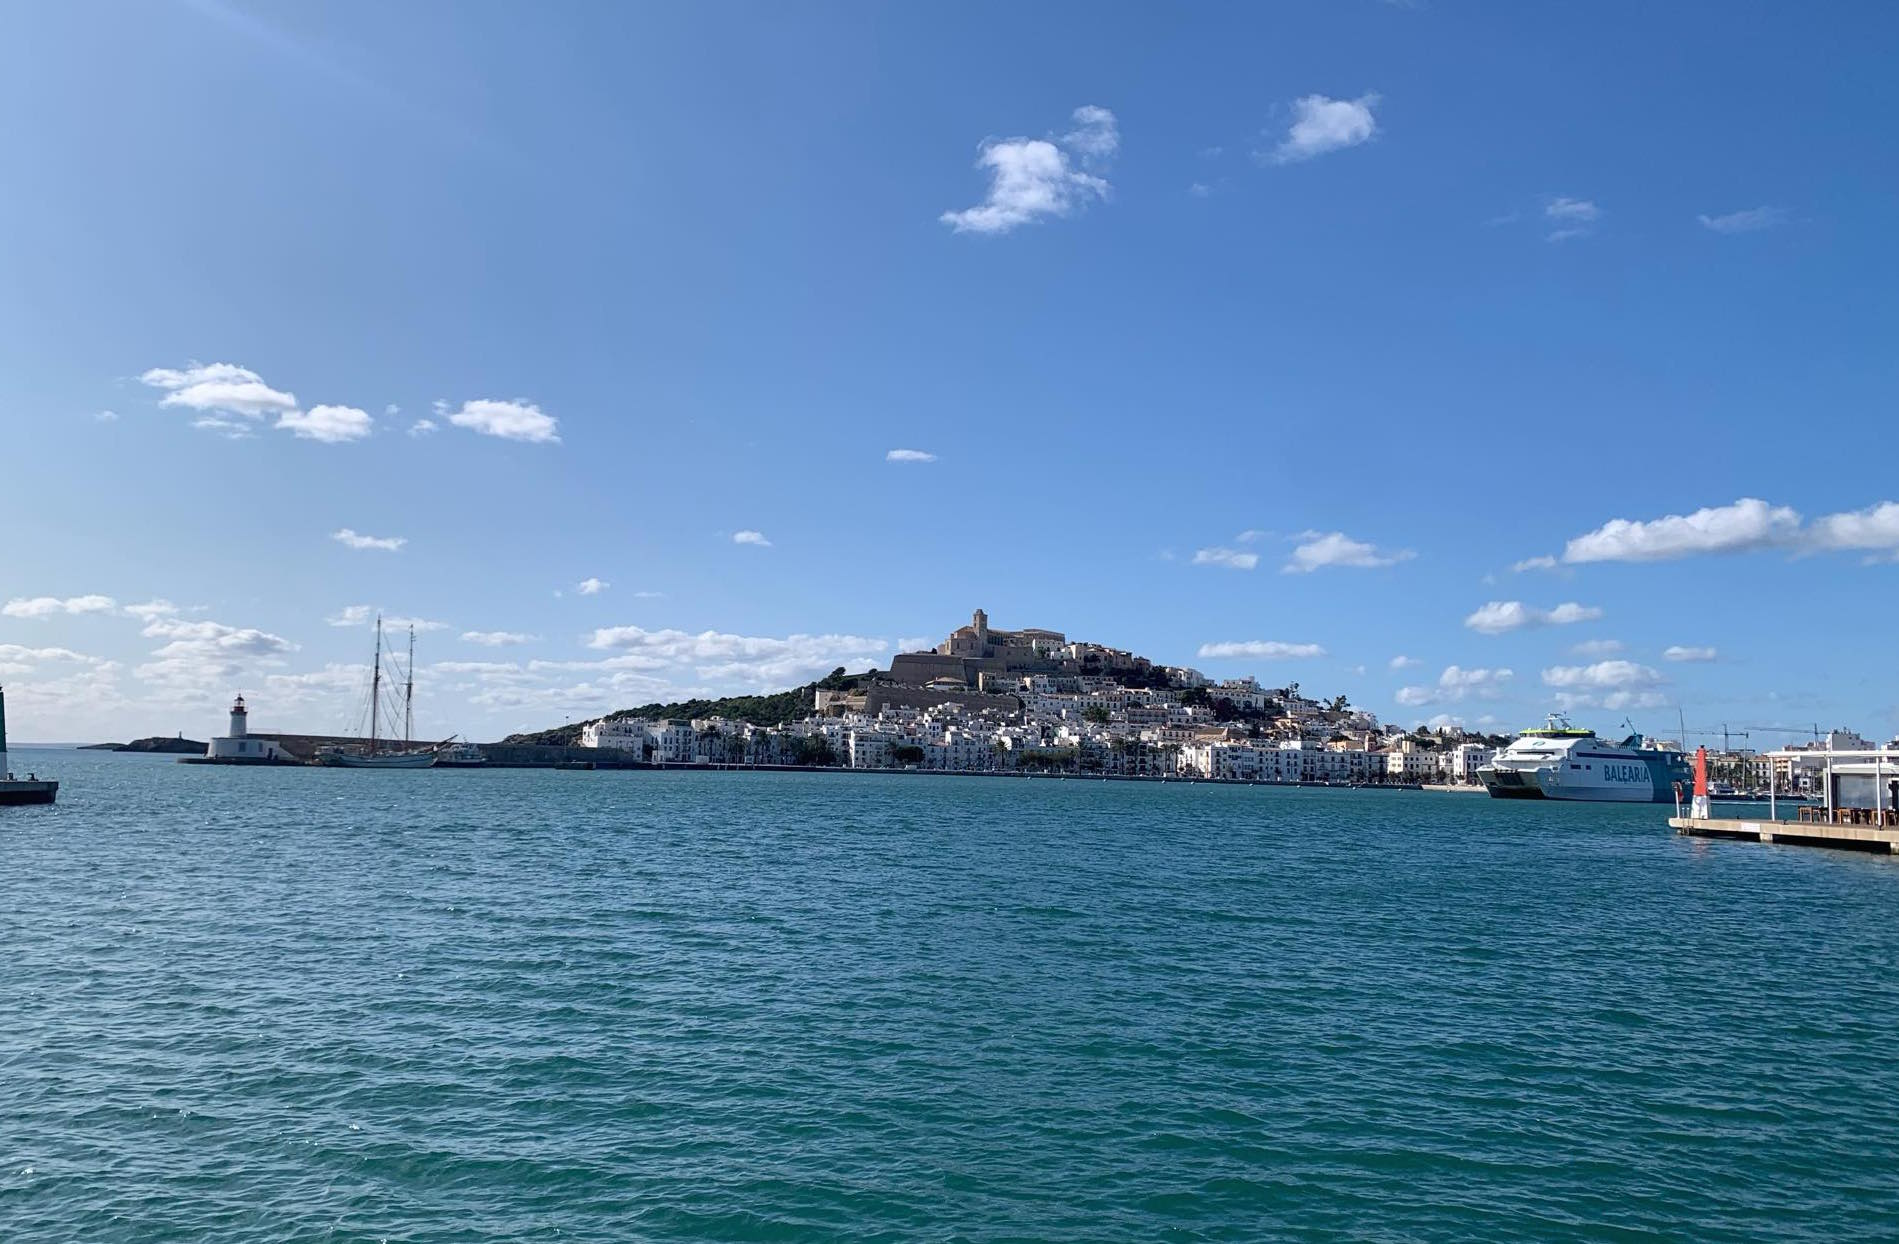 Autumn 2019 in Ibiza: the beautiful side of the island!